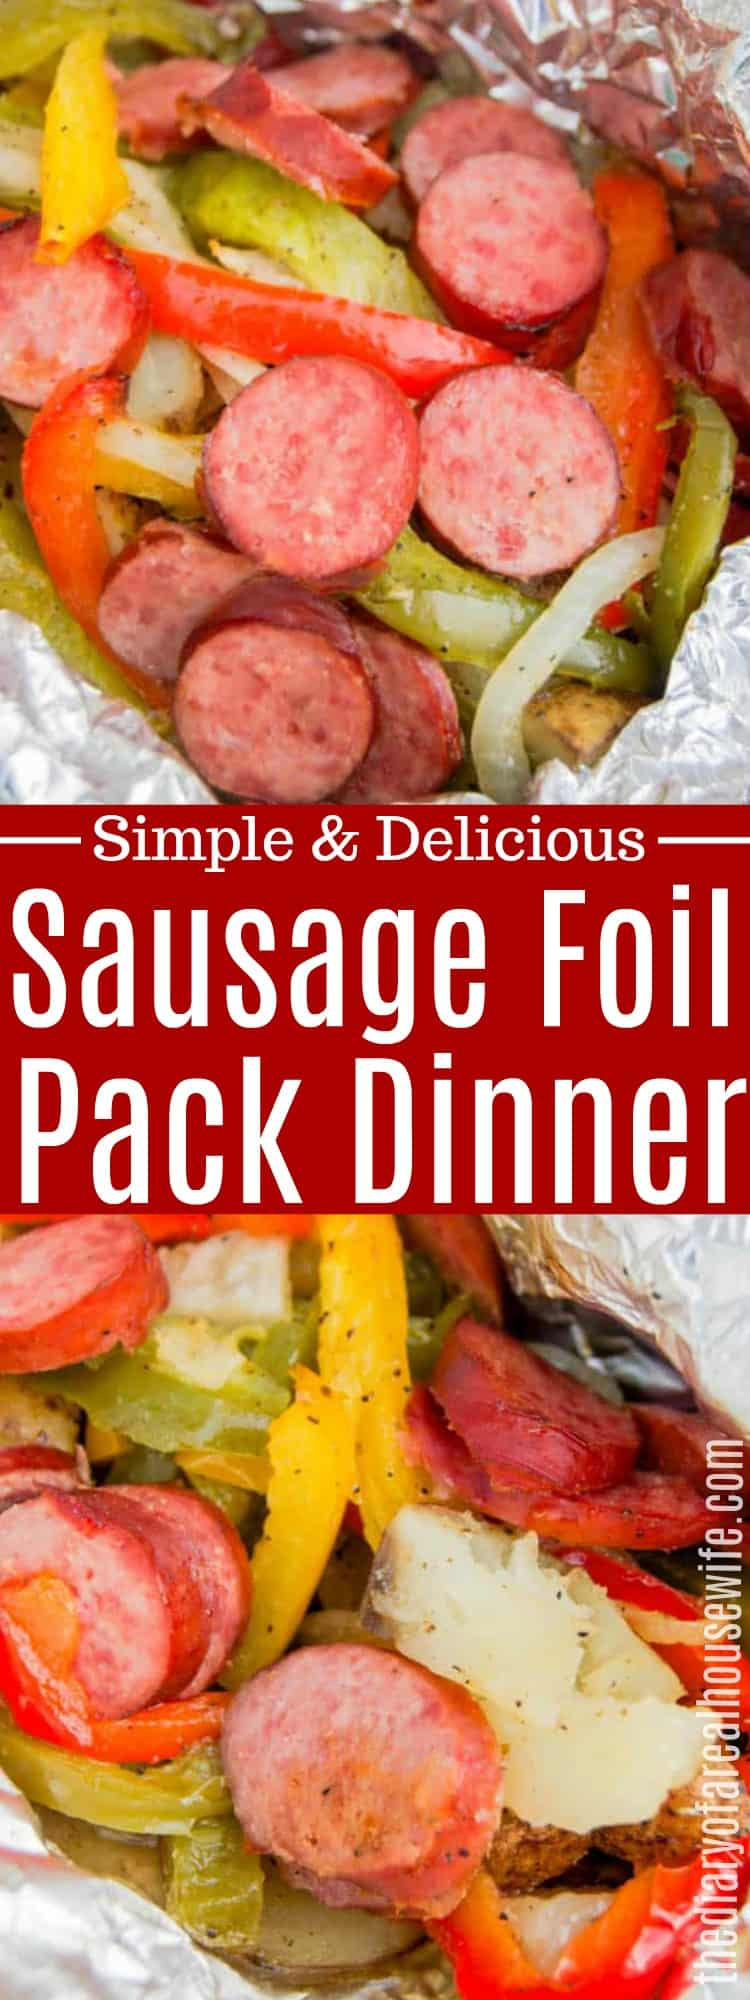 Sausage, Pepper, and Potato Foil Pack Dinner